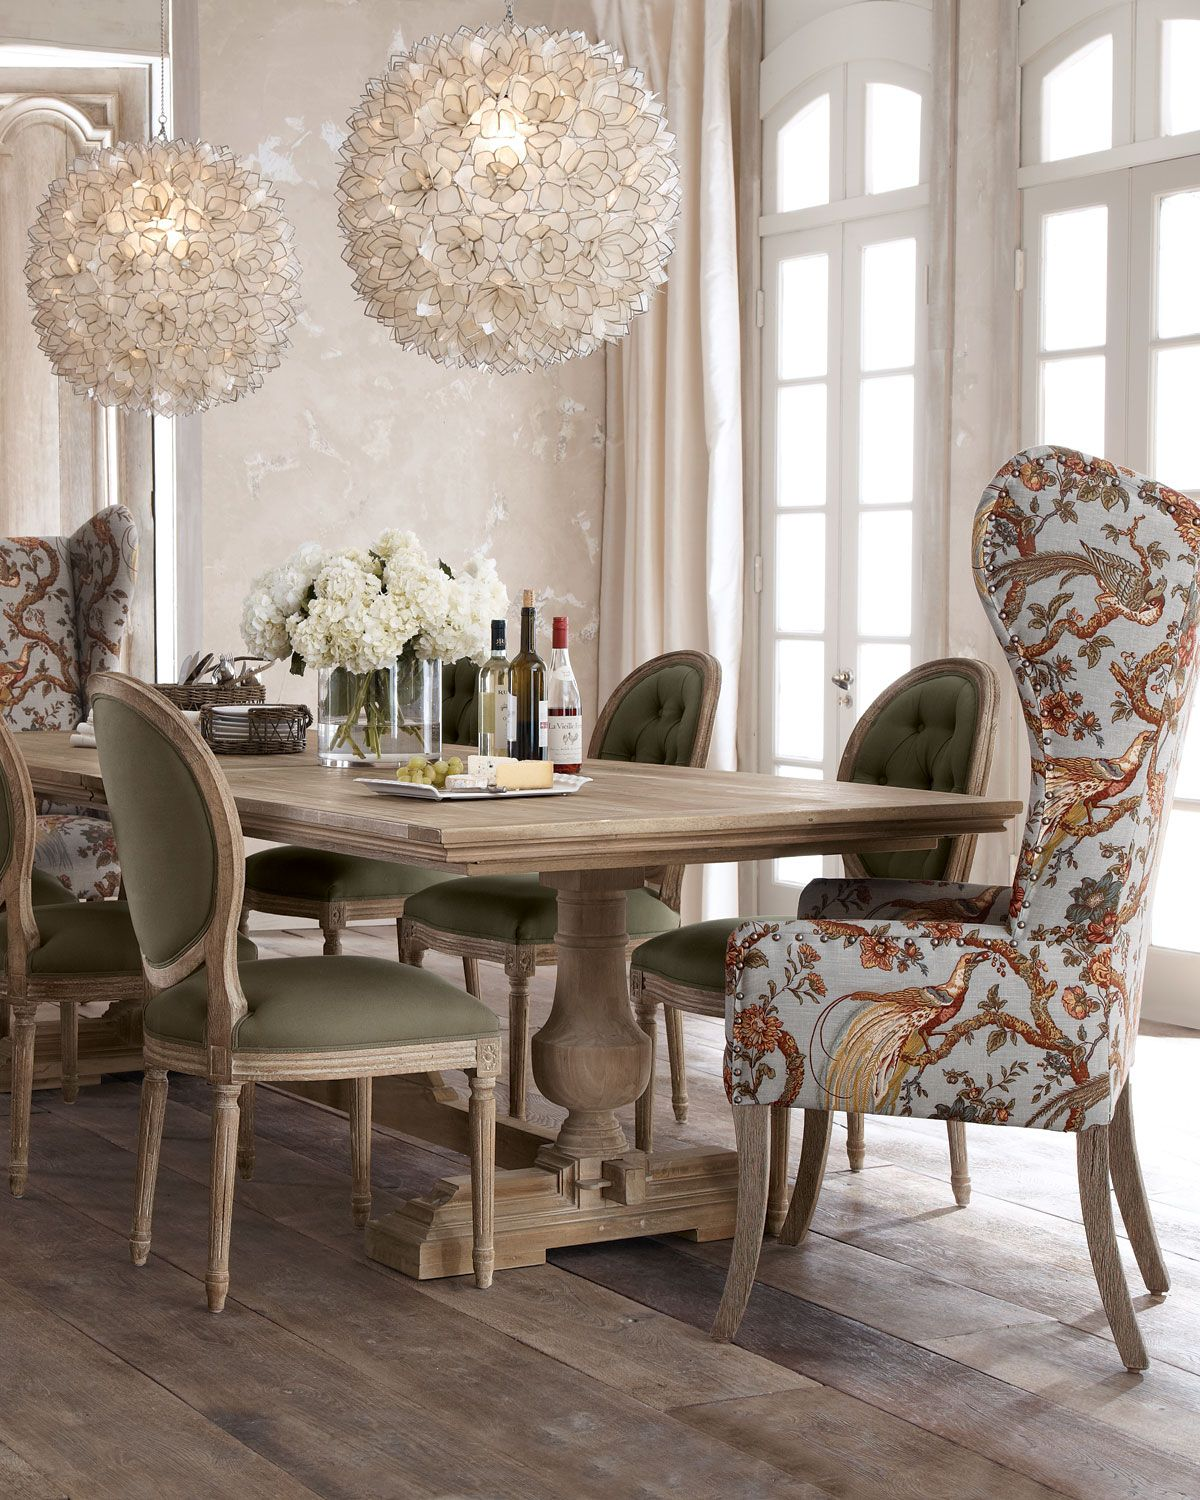 "Evelyn"" Dining Table ""blanchett"" Side Chair And ""pheasant"" Host Alluring Decorating Ideas For Dining Room Table Inspiration Design"